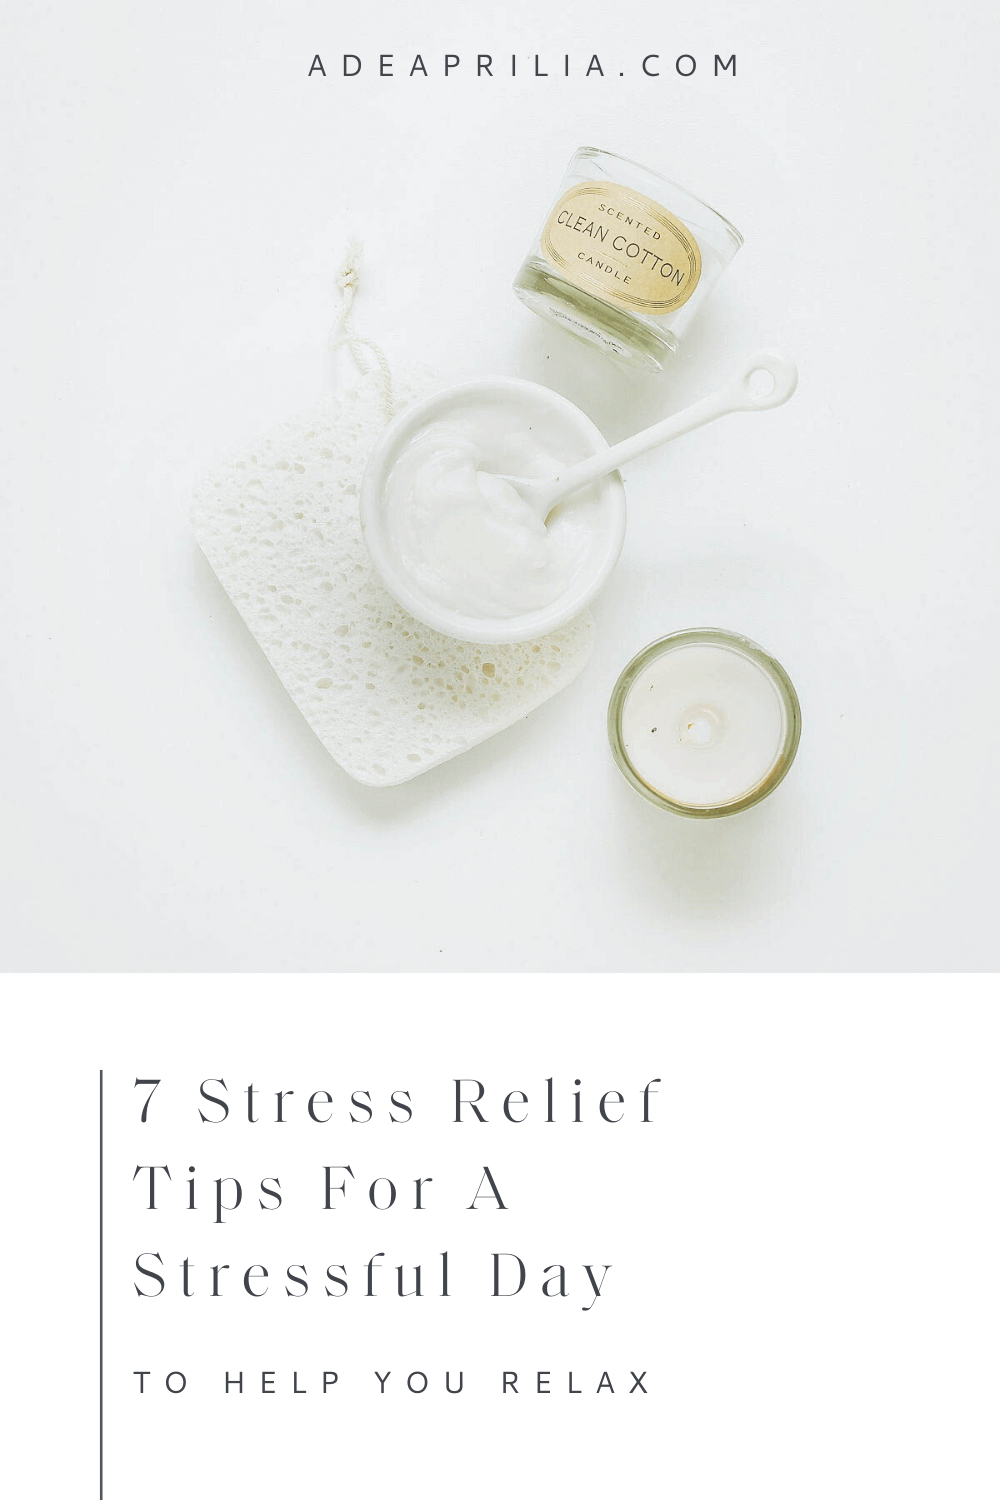 Stress Relief Quotes 7 Stress Relief Tips To Help You Relax After A Stressful Day - adeaprilia.com